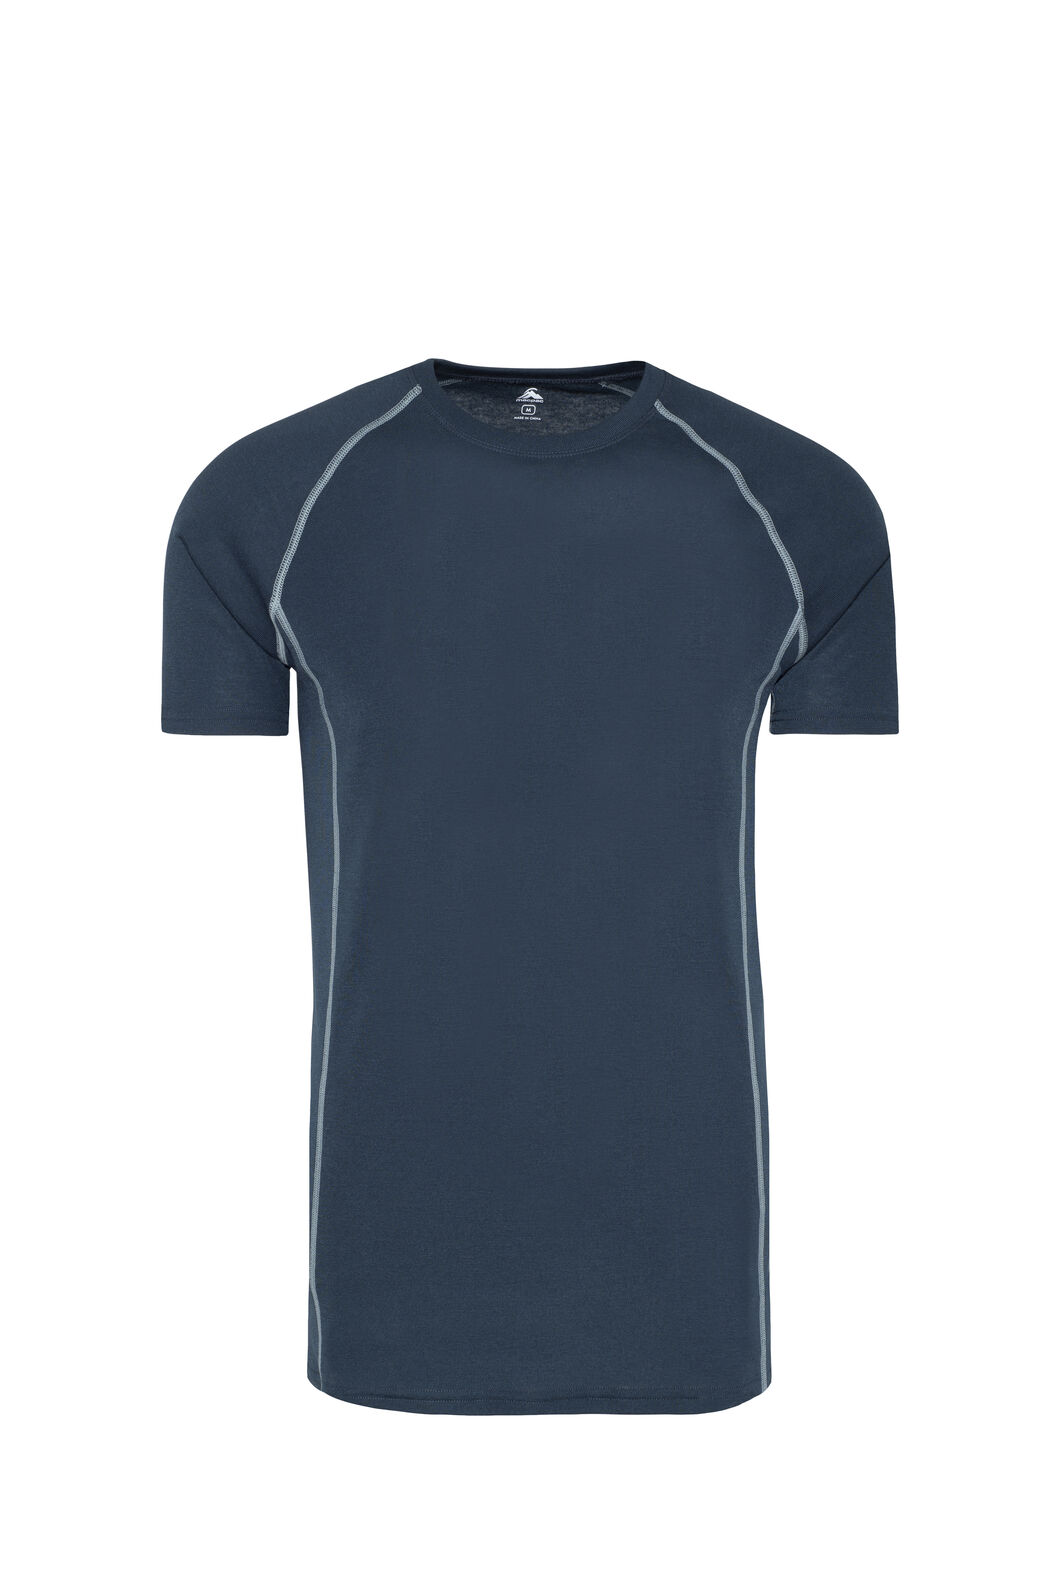 Macpac Geothermal Short Sleeve Top — Men's, Carbon, hi-res